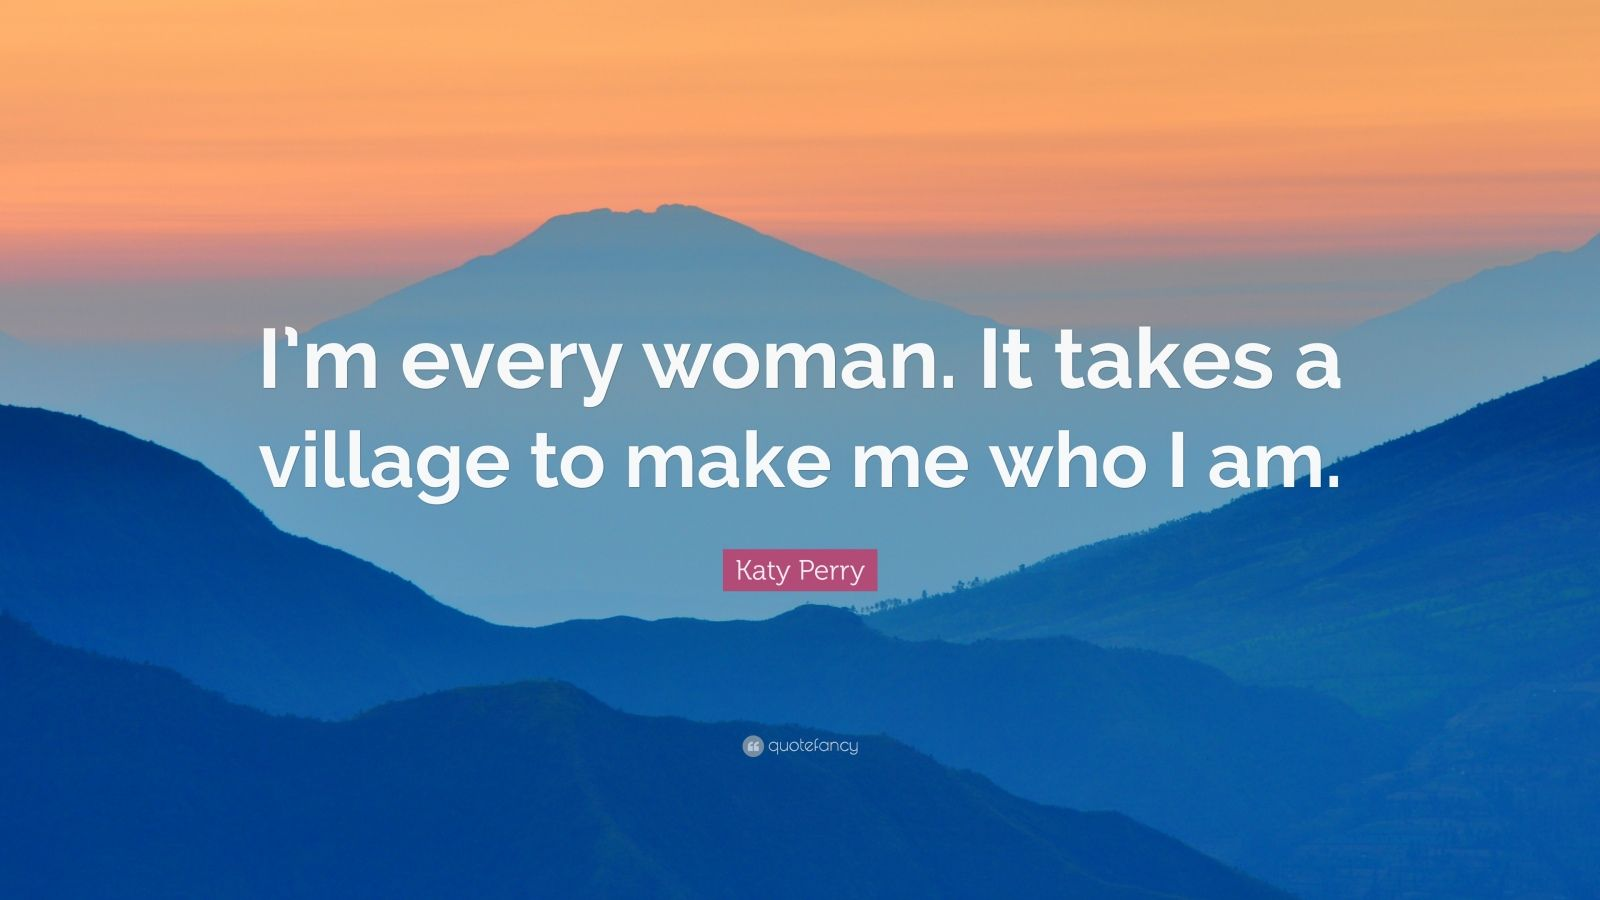 """Katy Perry Quote: """"I'm every woman. It takes a village to make me who I am."""""""